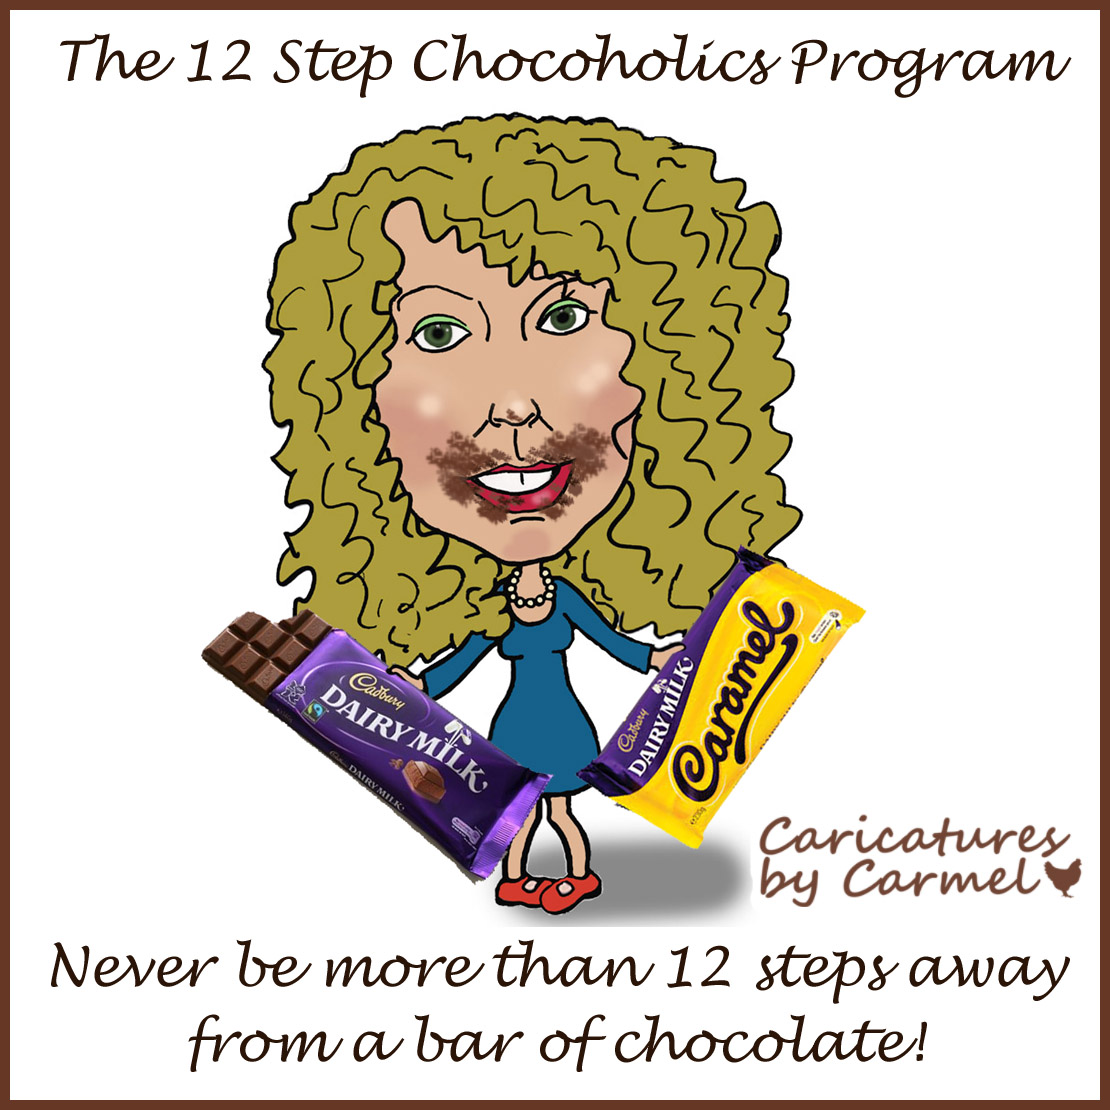 Confessions of a Chocoholic on International Chocolate Day